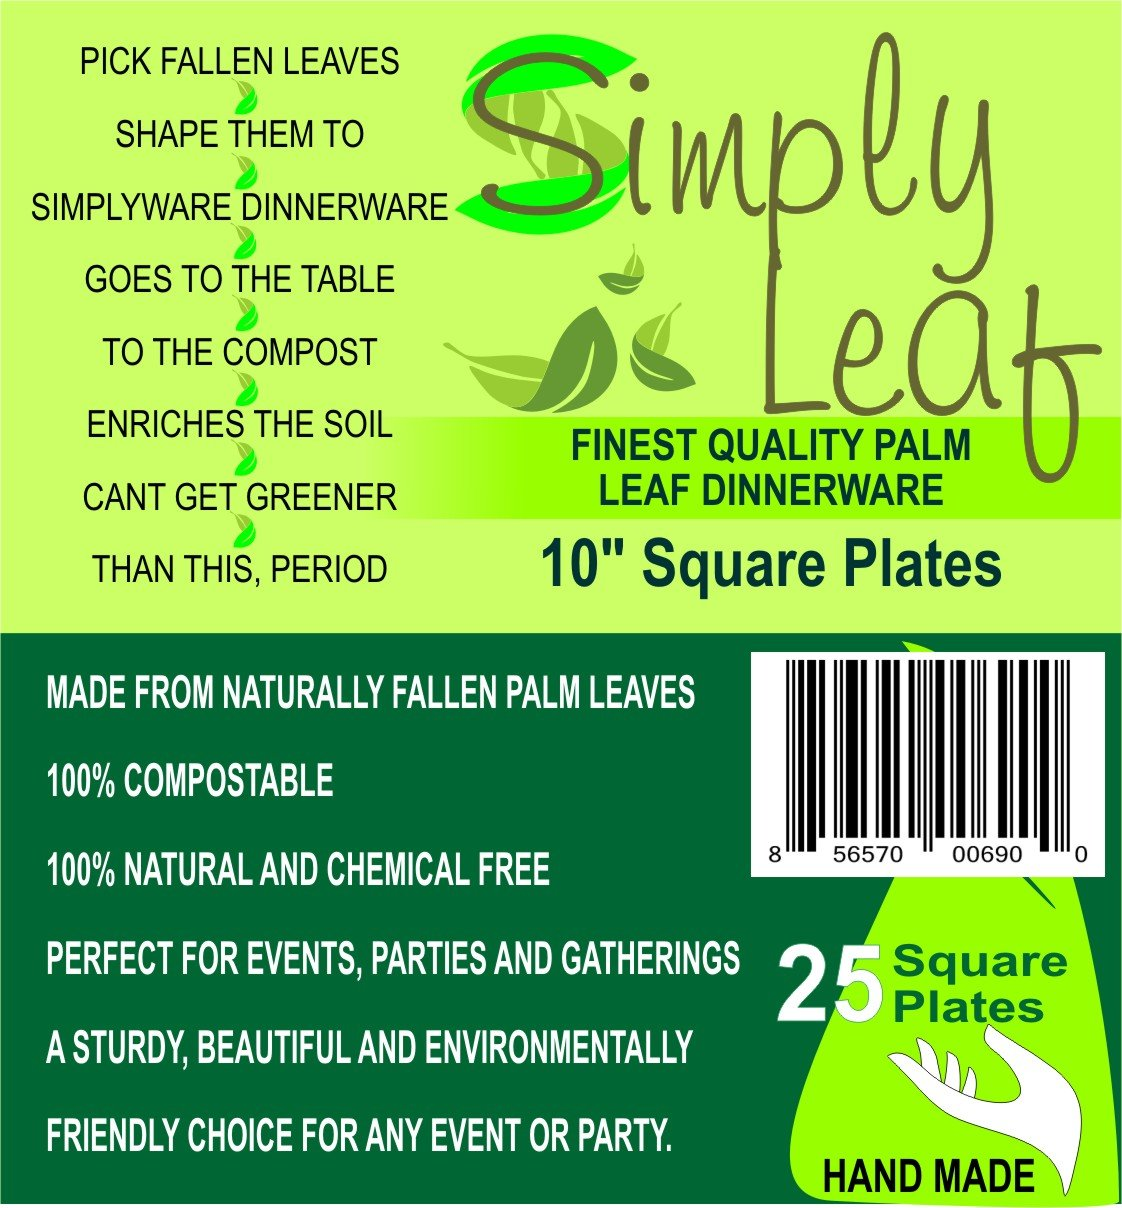 """Simply Leaf Square Disposable Dinner Plates (Large 10"""") Natural, Ecofriendly, Biodegradable   100% Compostable Palm Leaves   Artisanal Style for Home, Events"""